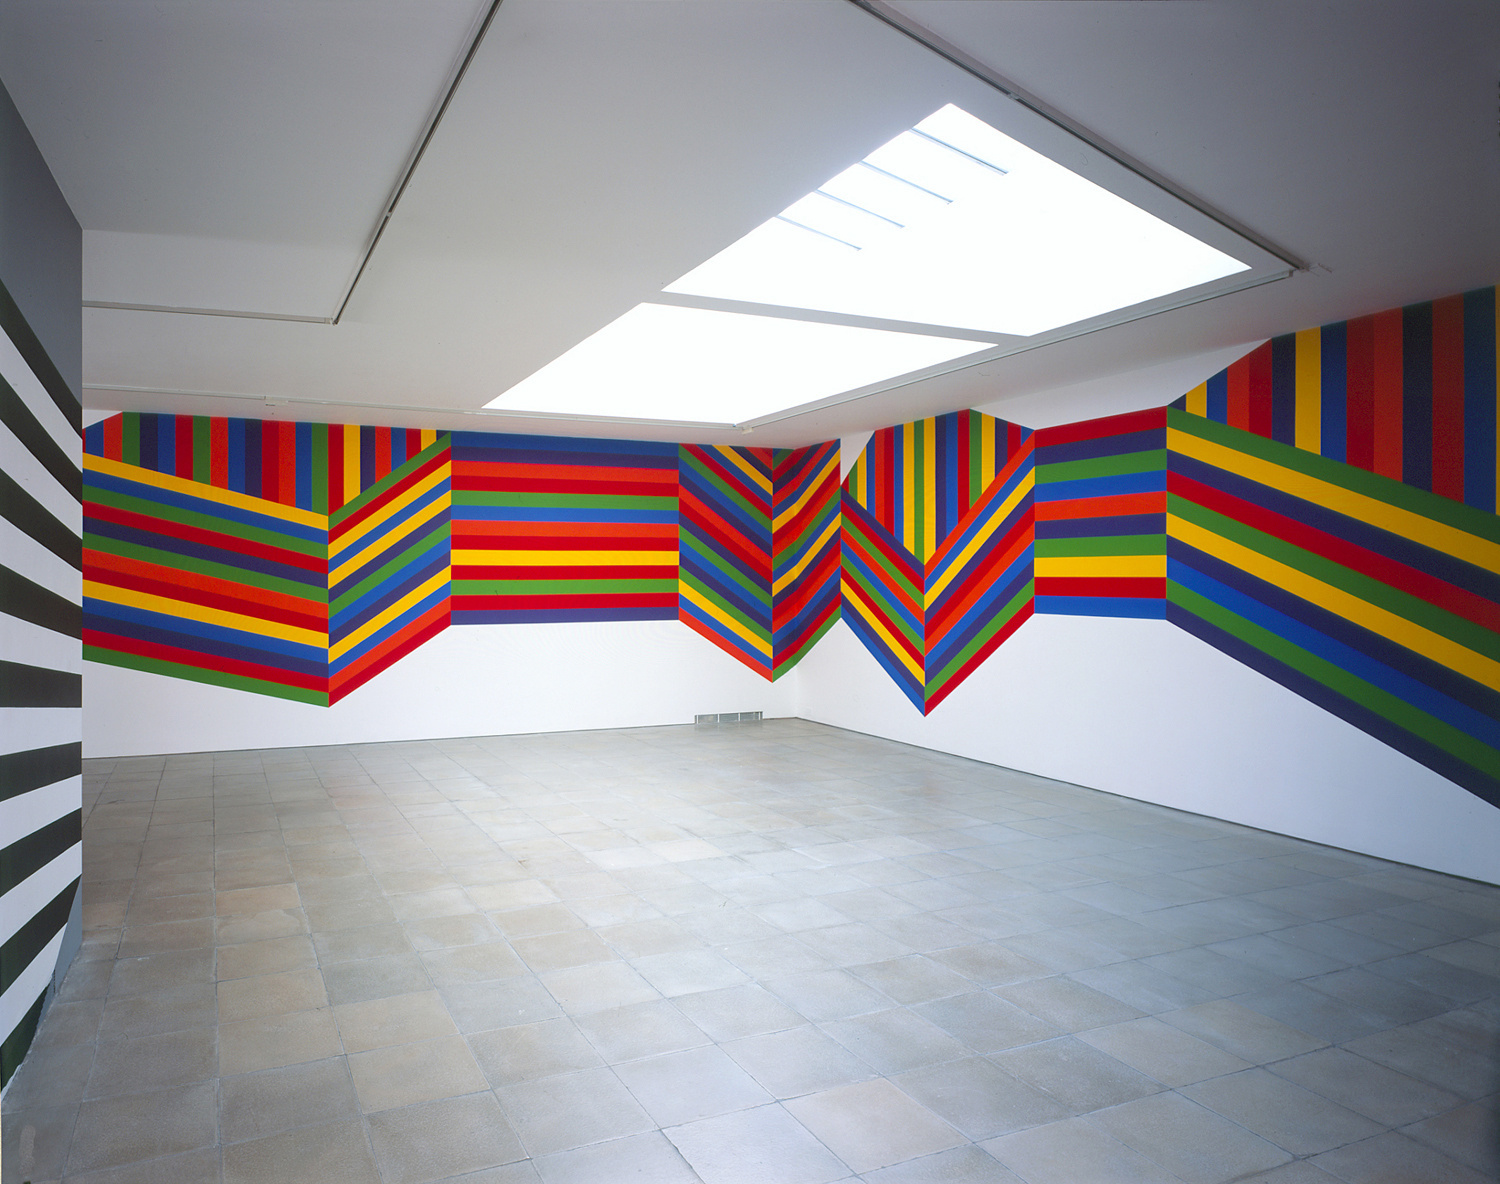 Sol LeWitt Wall Drawing #1138: Forms composed of bands of color, 2004 Acrylic paint Installation dimensions variable